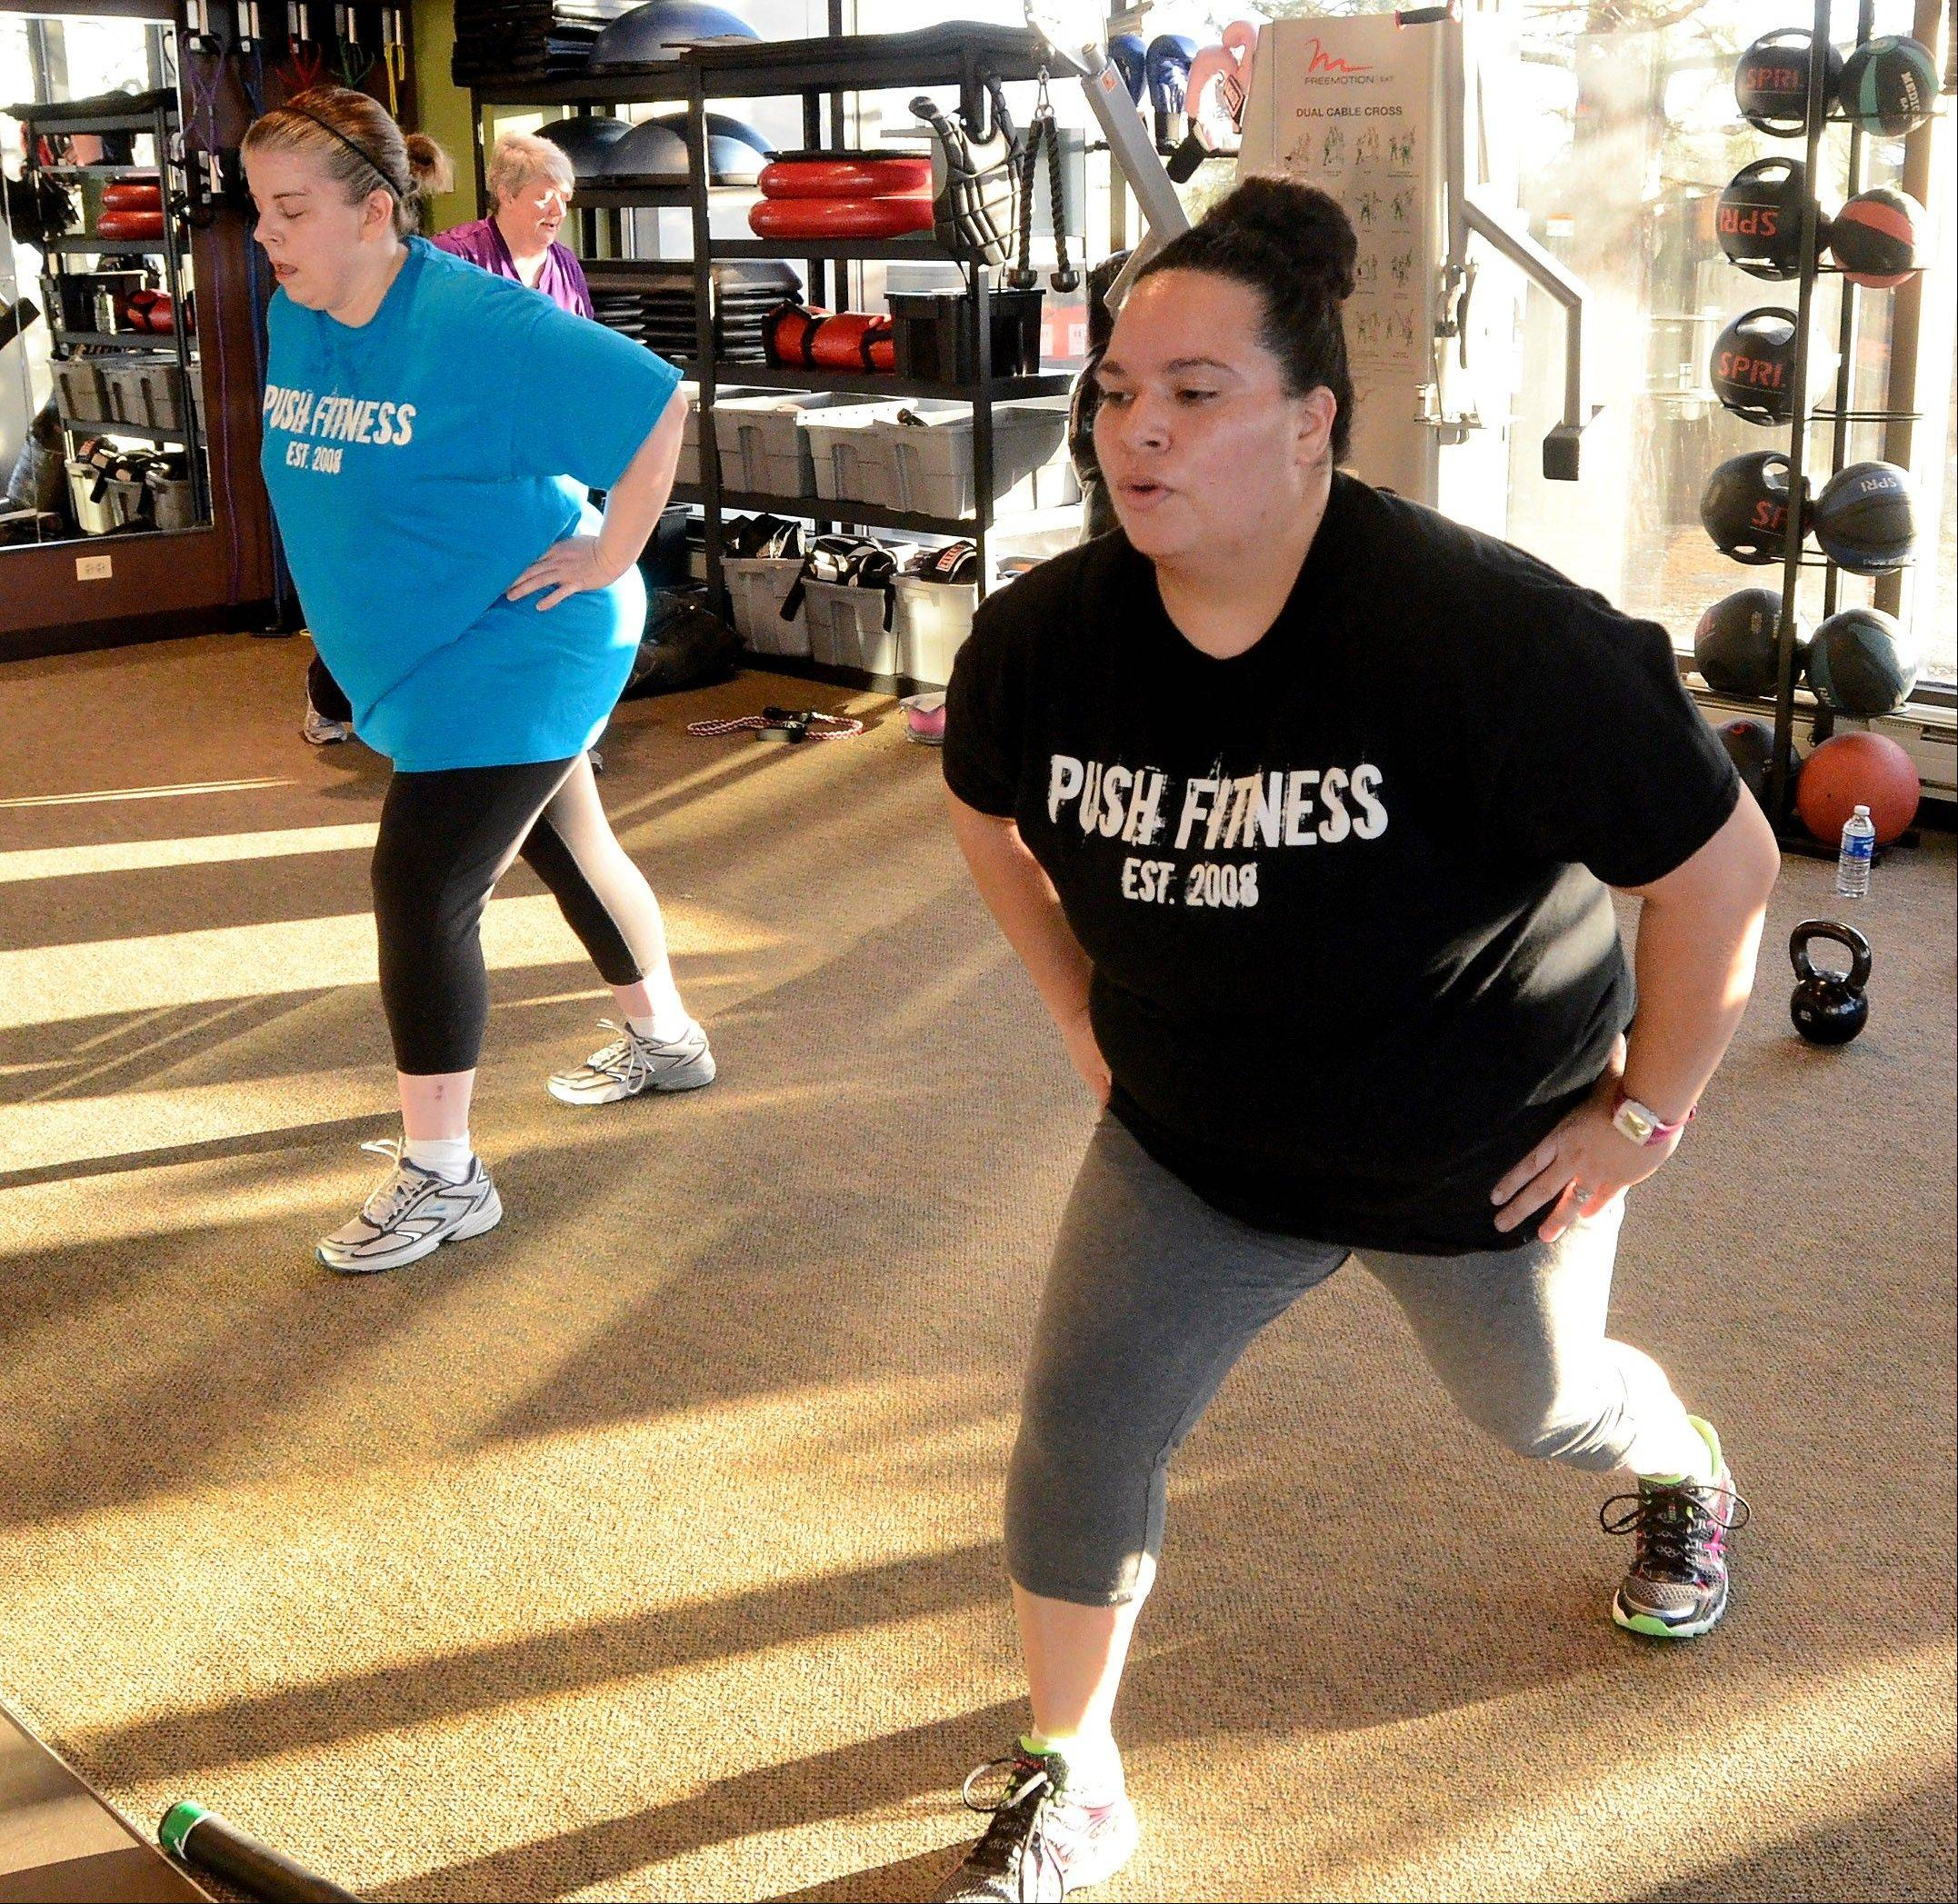 Marianne Costales-Roman, right, works out next to the Daily Herald's Fittest Loser Melynda Findlay.